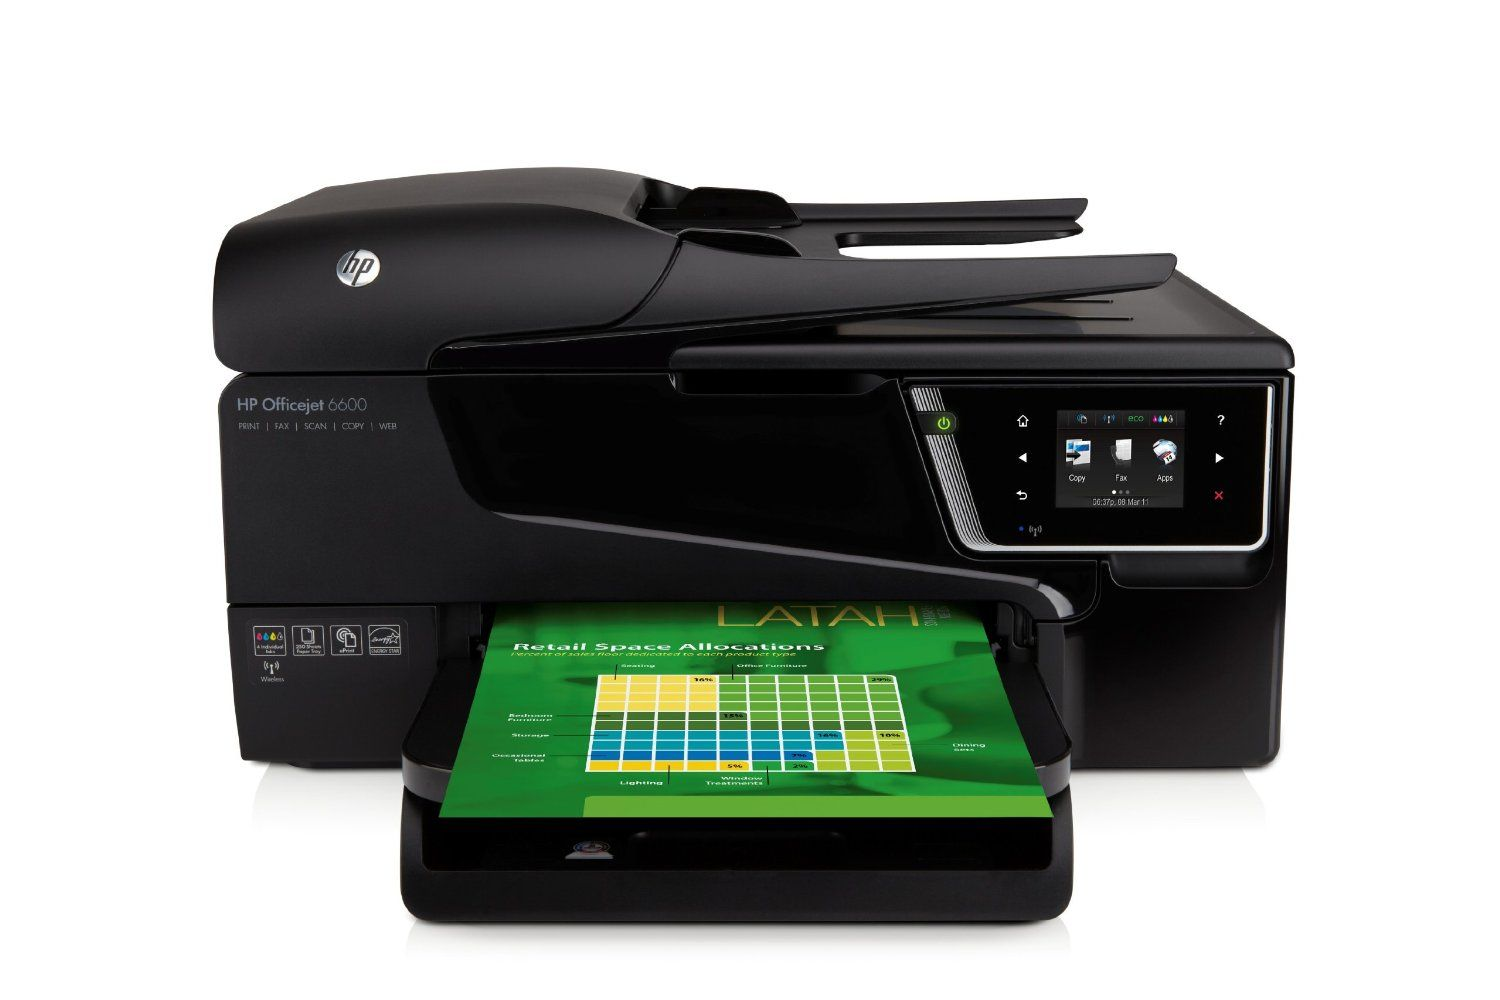 Hp All In One Officejet 6600 In Office Wireless Color Photo Printer With Scanner Copier And Fax Multifunction Printer Wireless Printer Hp Officejet